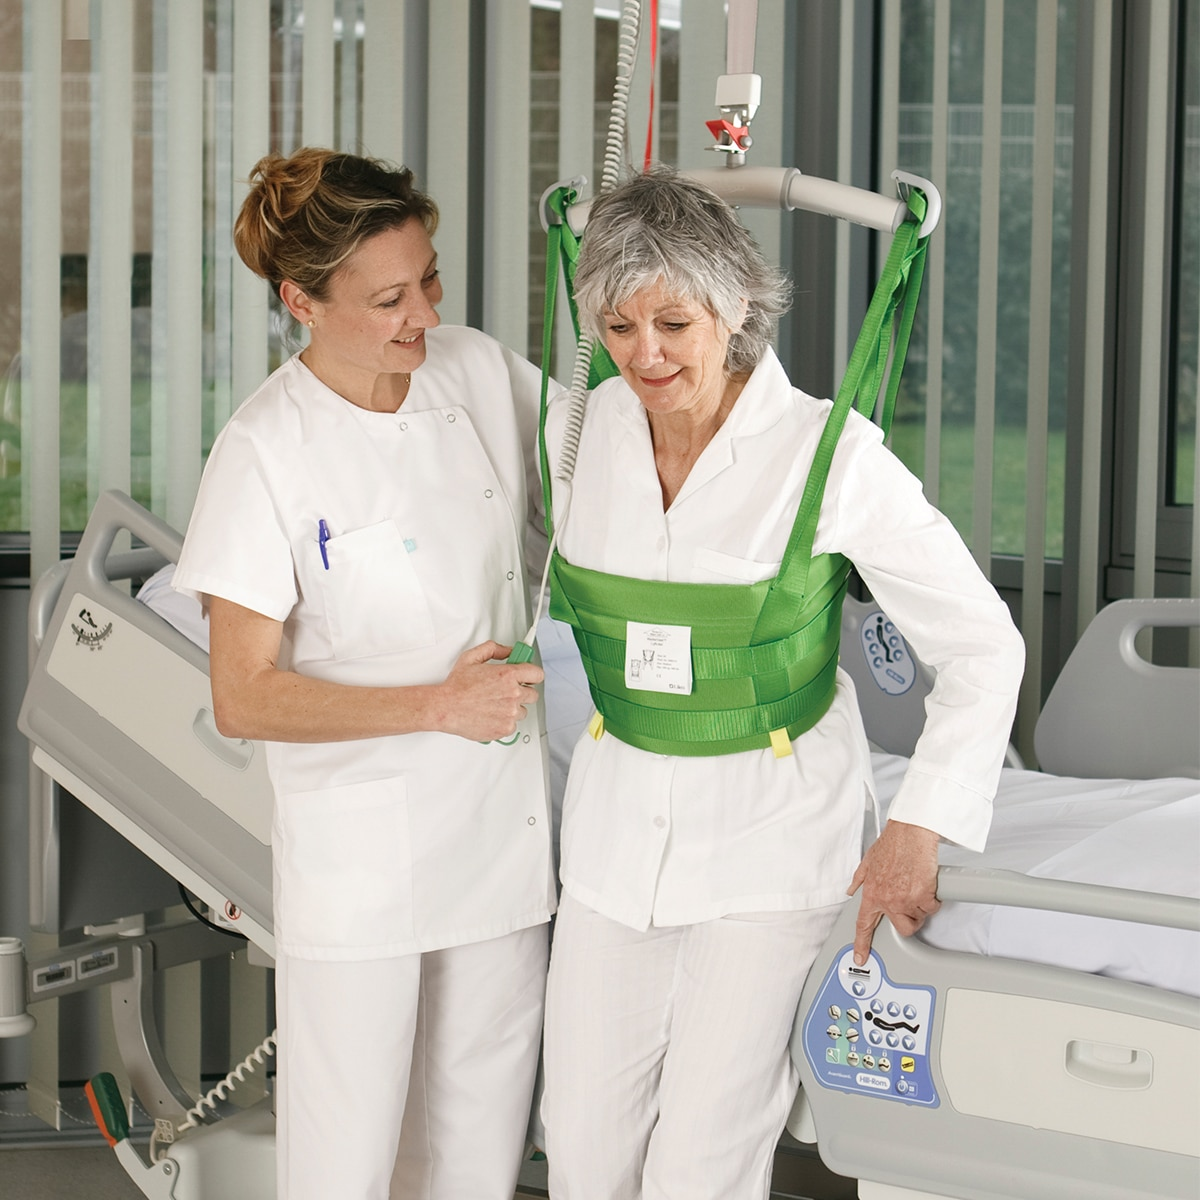 A clinician helps a patient walk in a hospital room with a Hillrom overhead lift and MasterVest